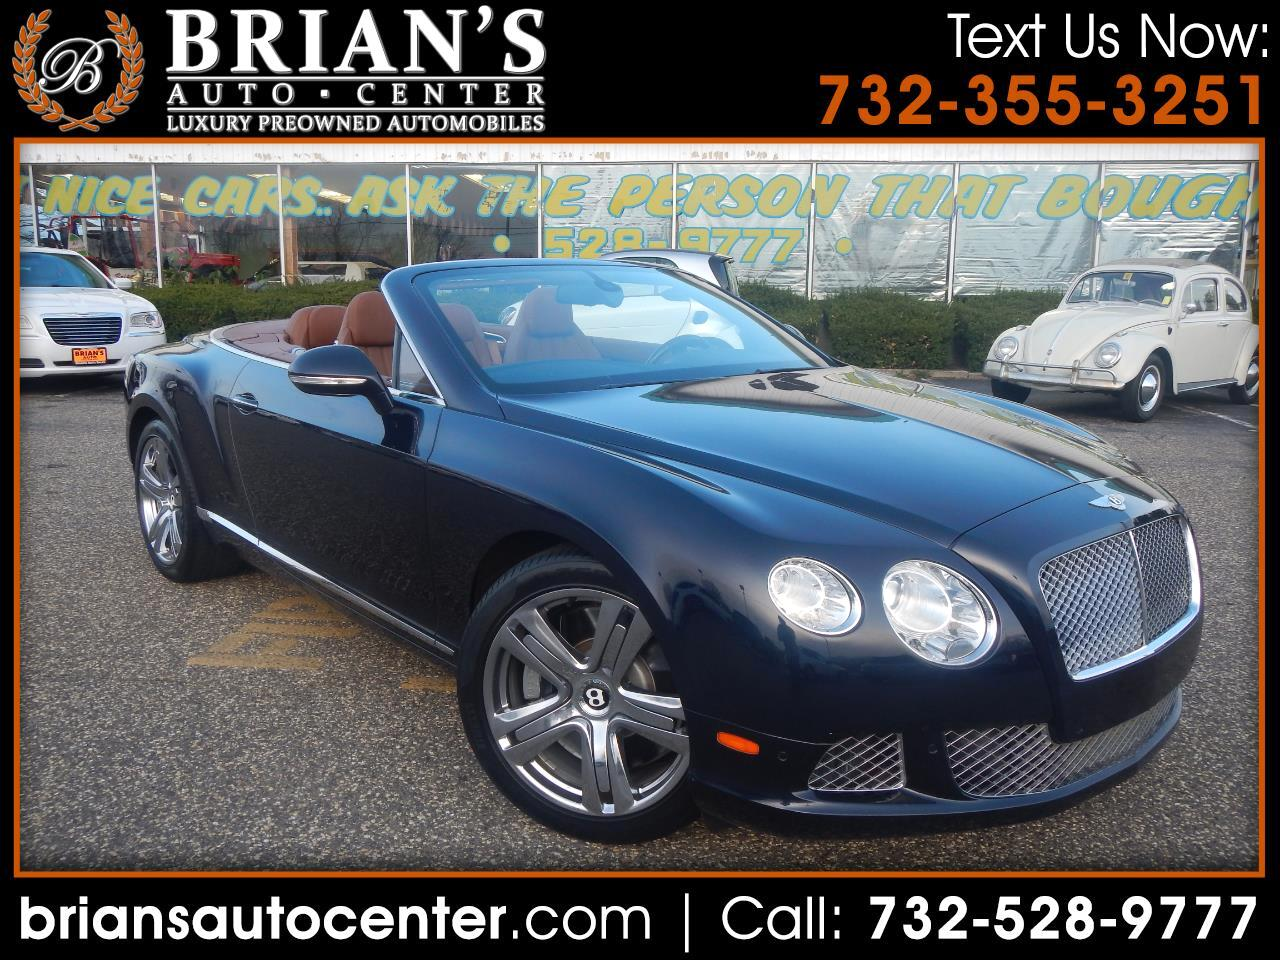 2012 Bentley Continental GTC 2dr Conv